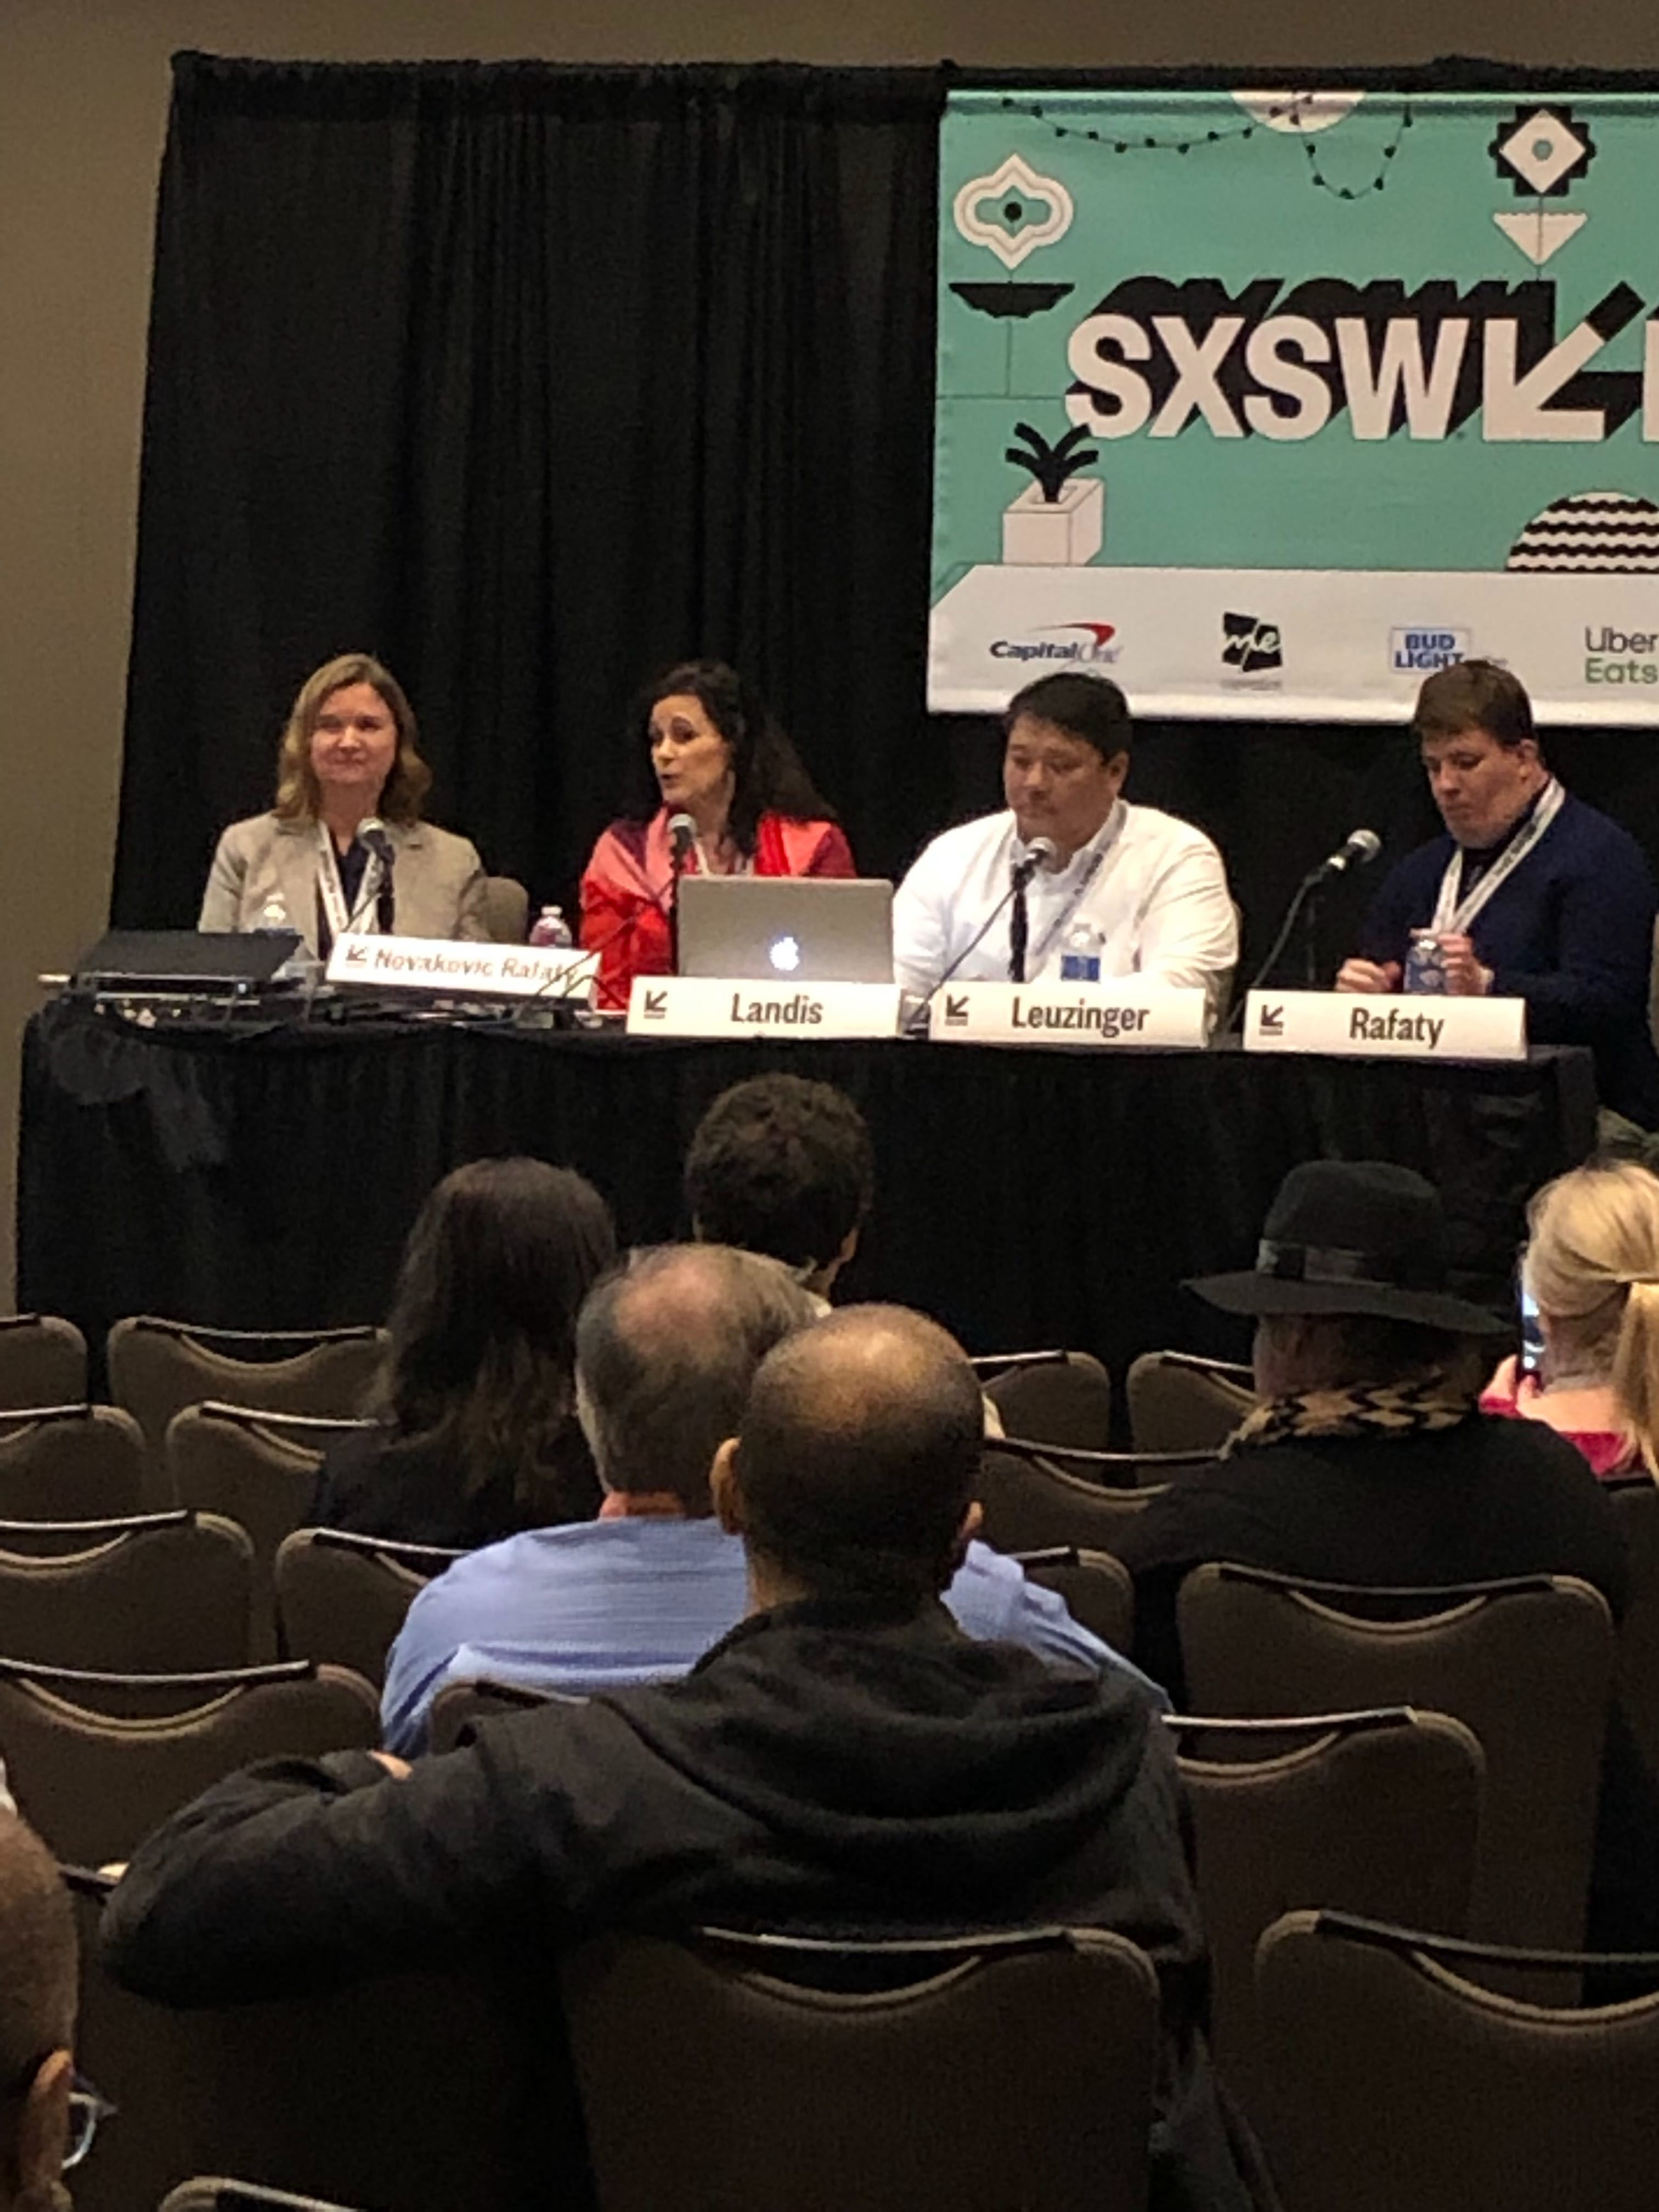 A360's Michele Landis speaking on four-person panel at South by Southwest